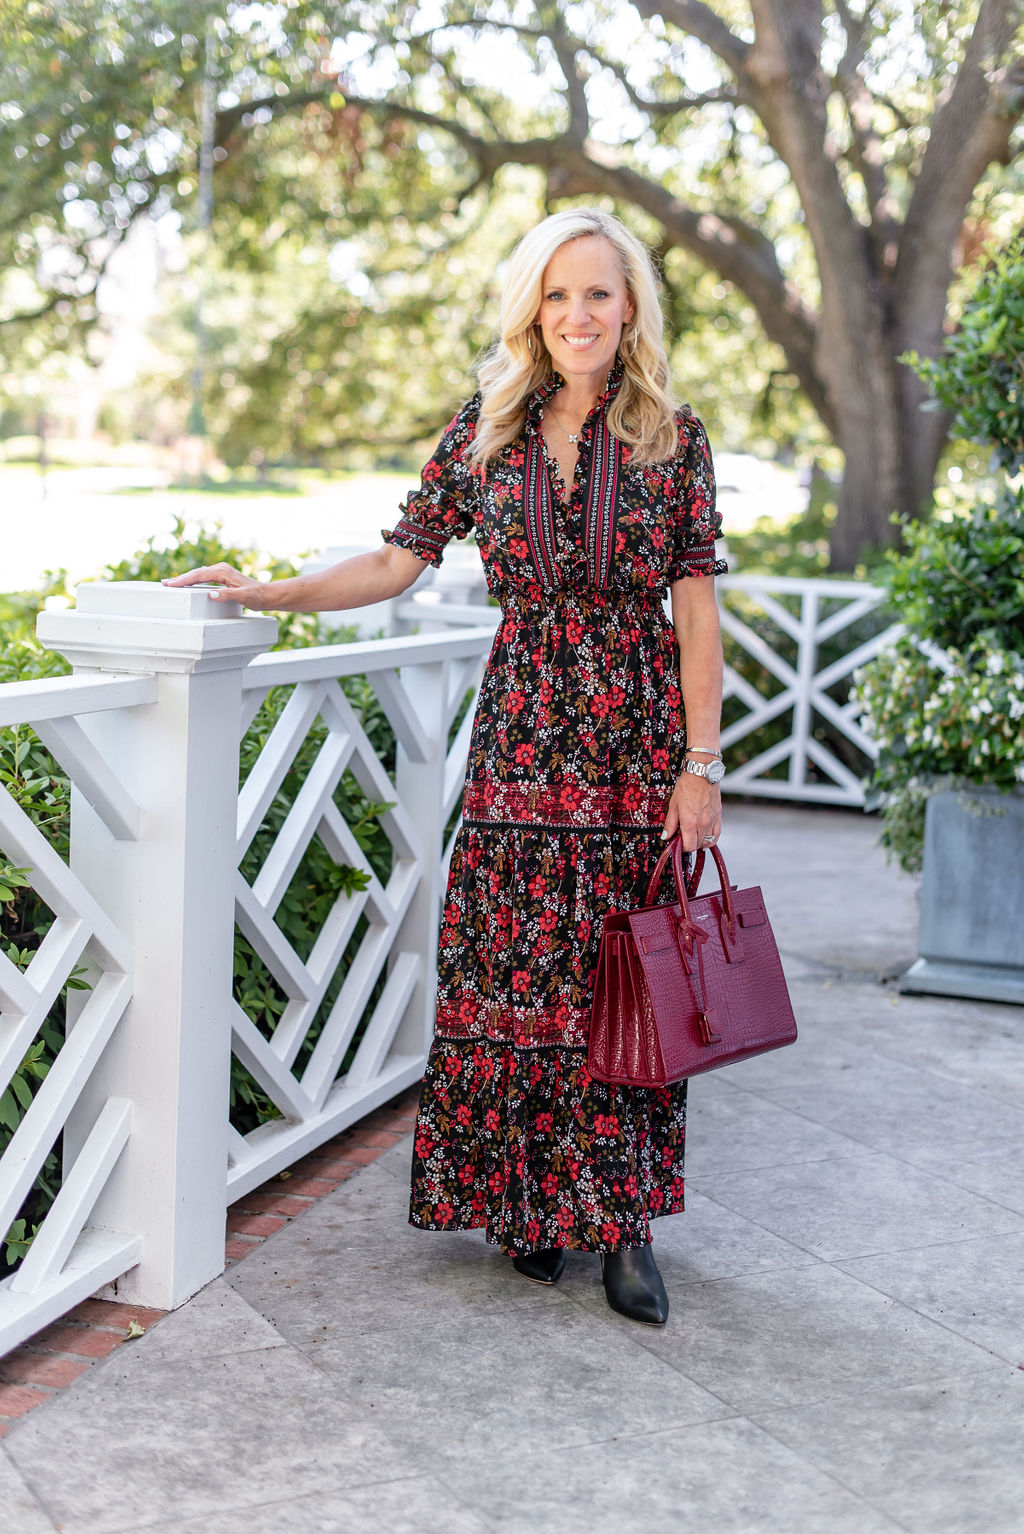 Fall Trend: Moody Florals